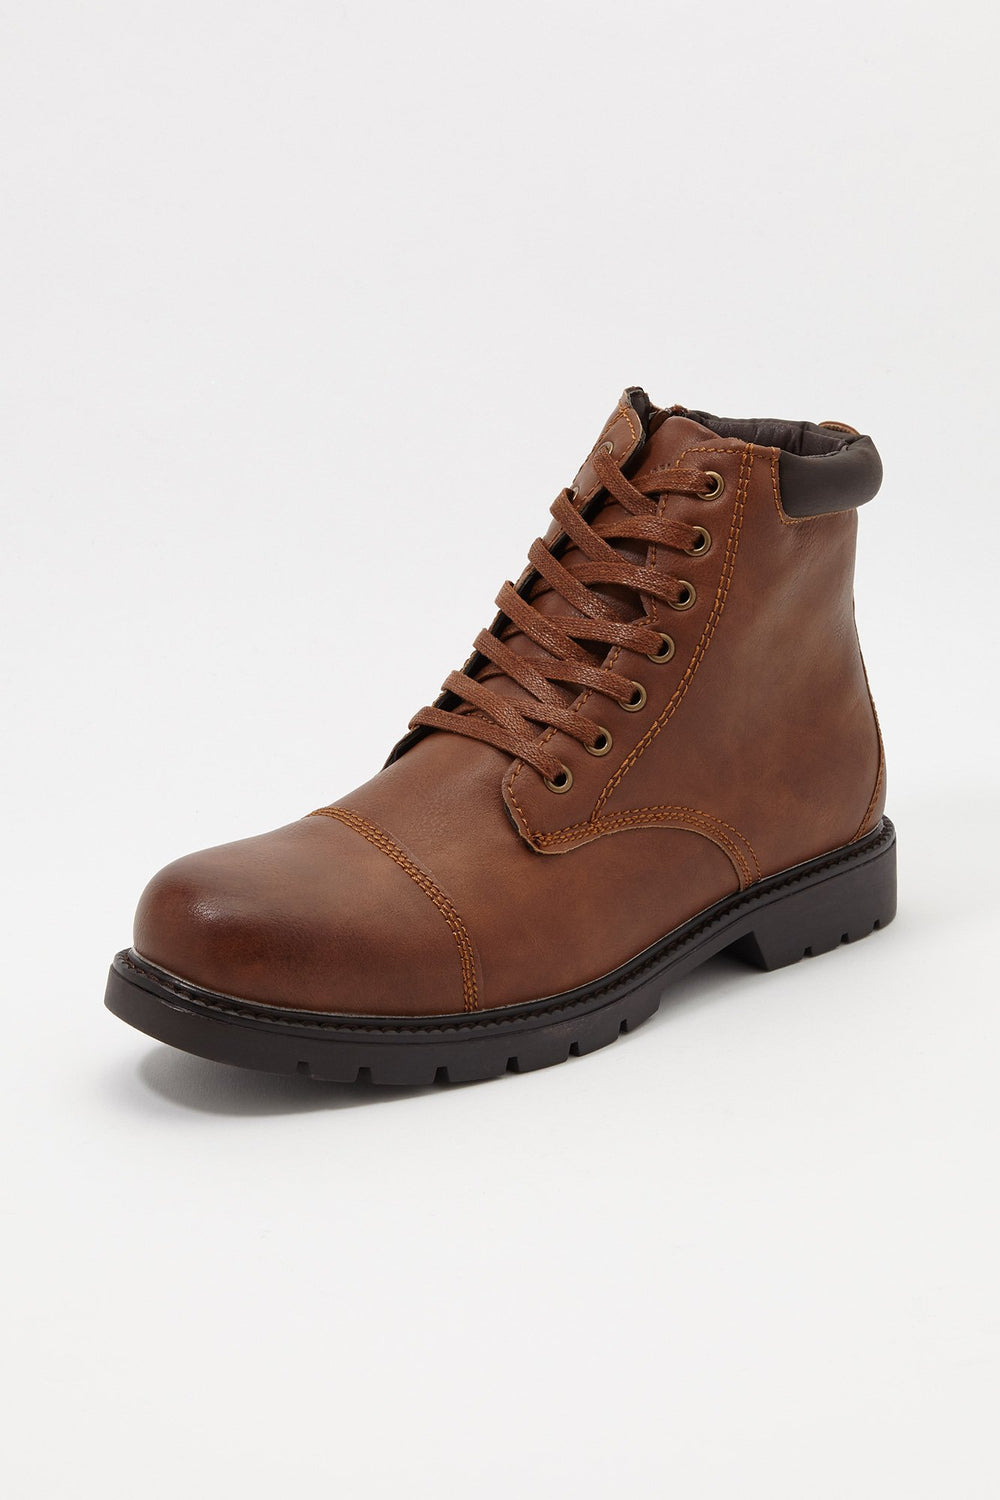 Storm Mountain Mens Lace-Up Boots Dark Brown